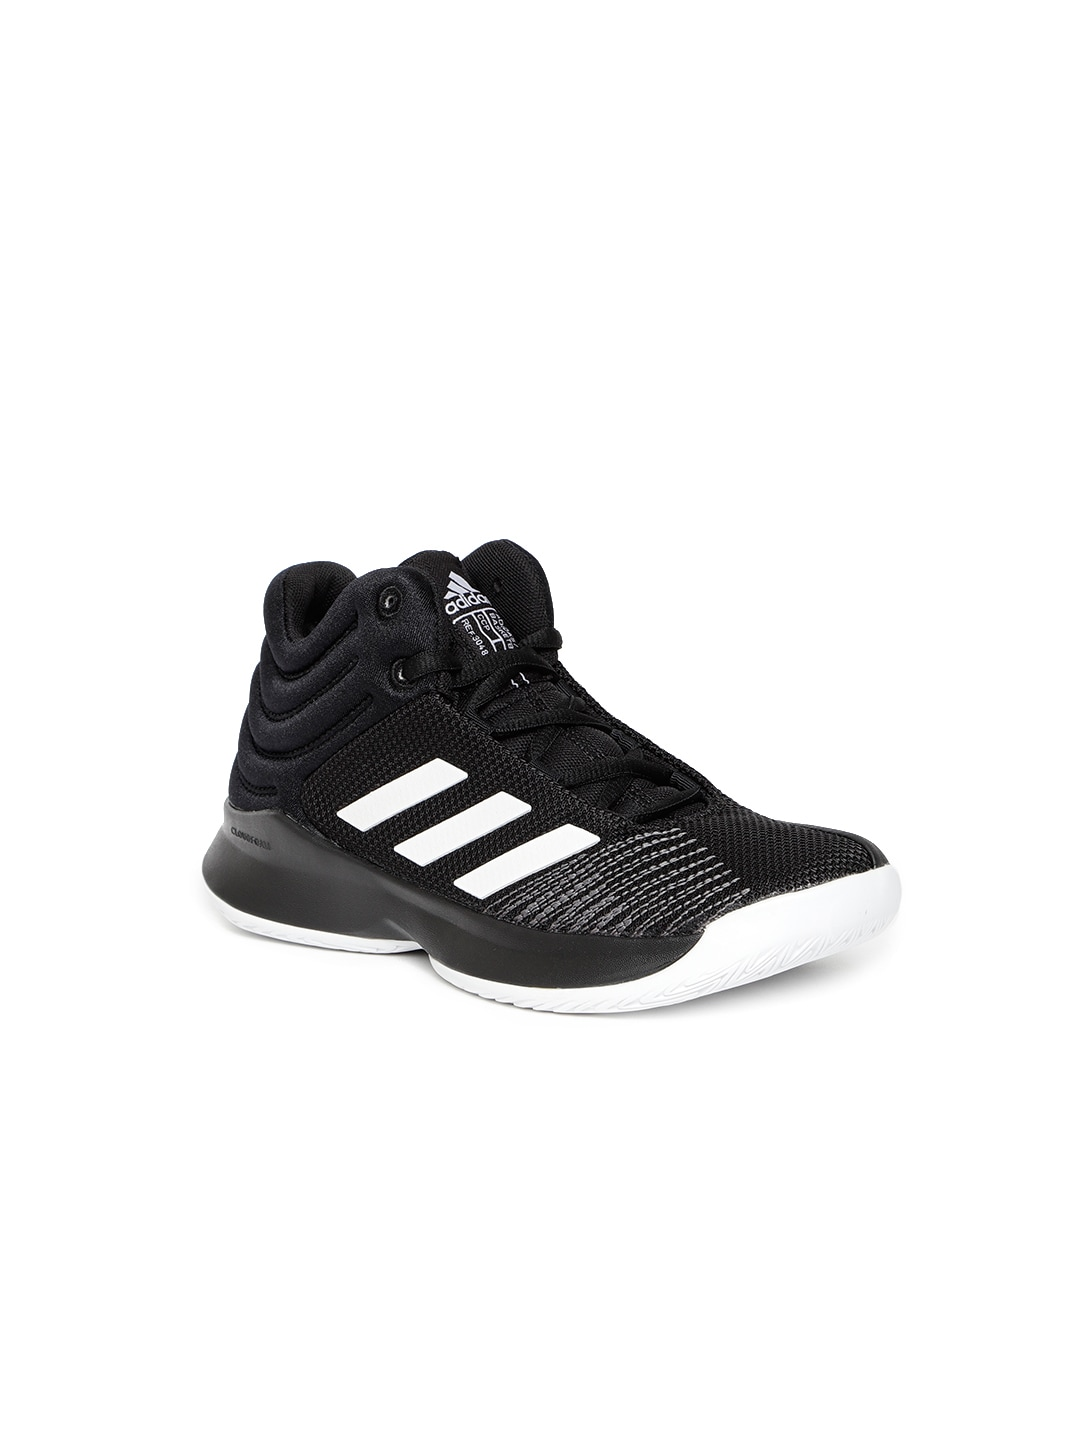 57927ca2c7e38 Adidas Pro Spark 2018 Black Basketball Shoes for Boys in India June ...